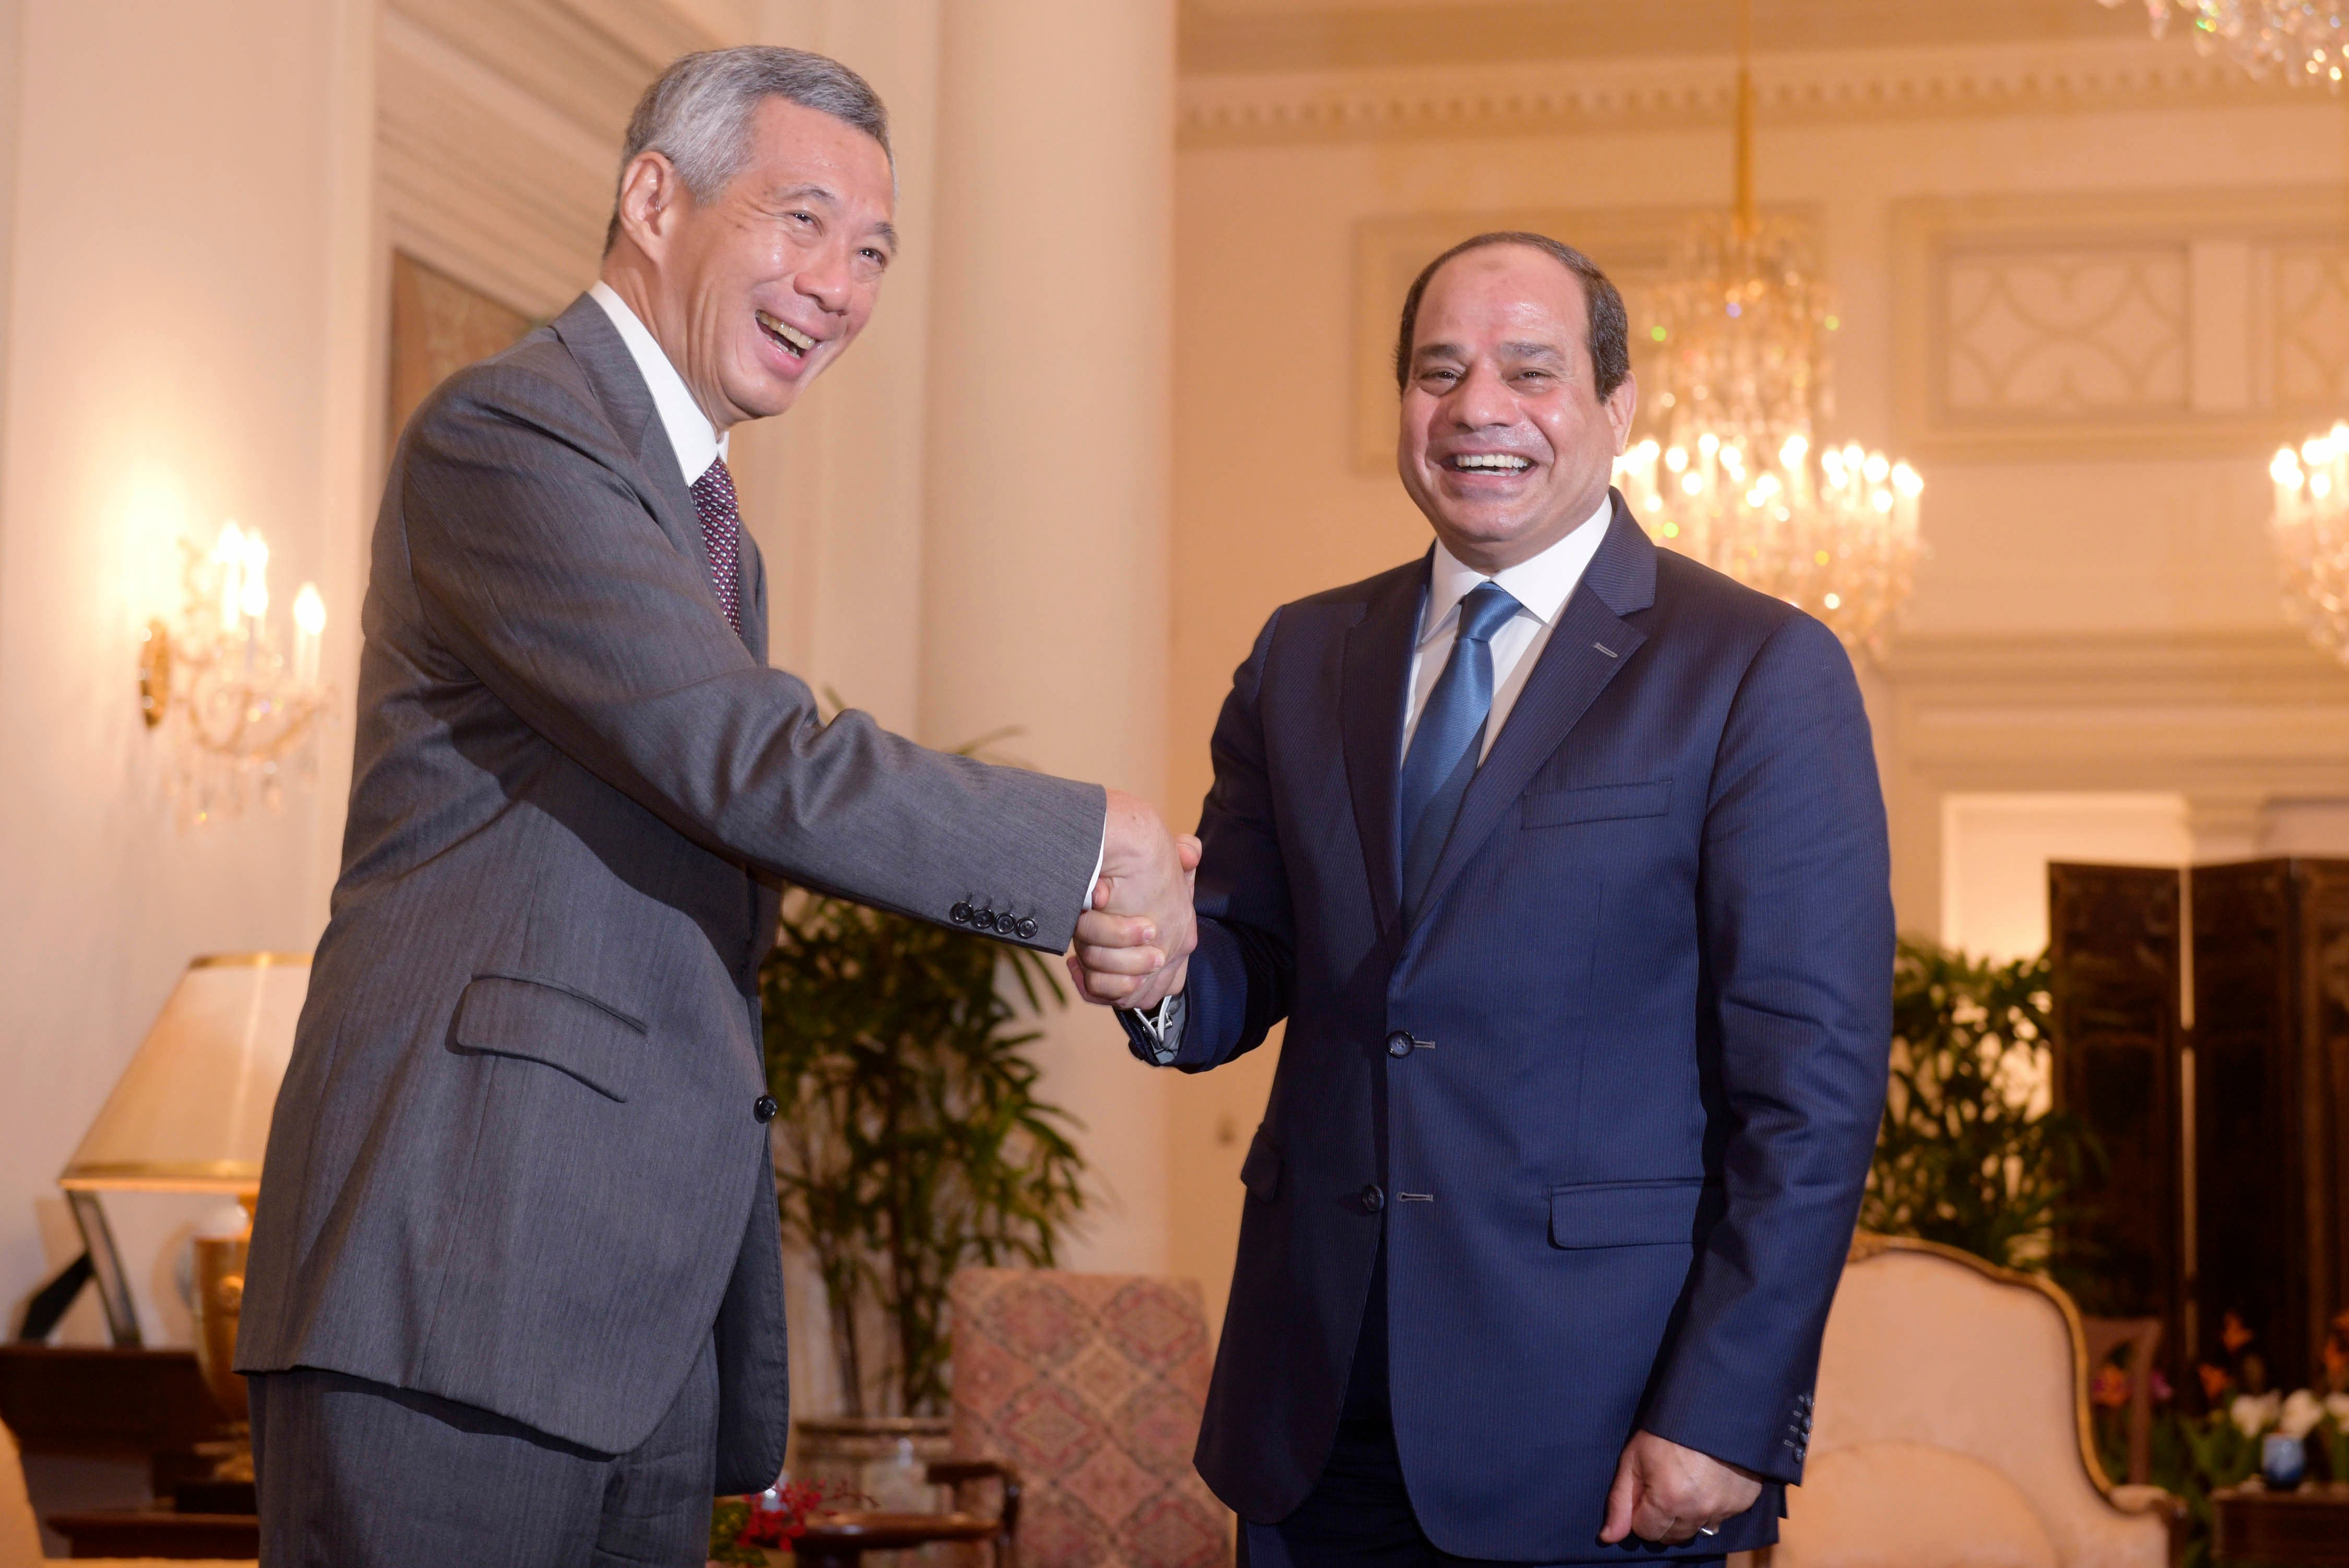 Singapore Prime Minister Lee Hsien Loong, left, greets Egyptian President Abdel-Fattah el-Sissi, right, at the Istana, or Presidential Palace, Monday, Aug. 31, 2015 in Singapore. (AP)